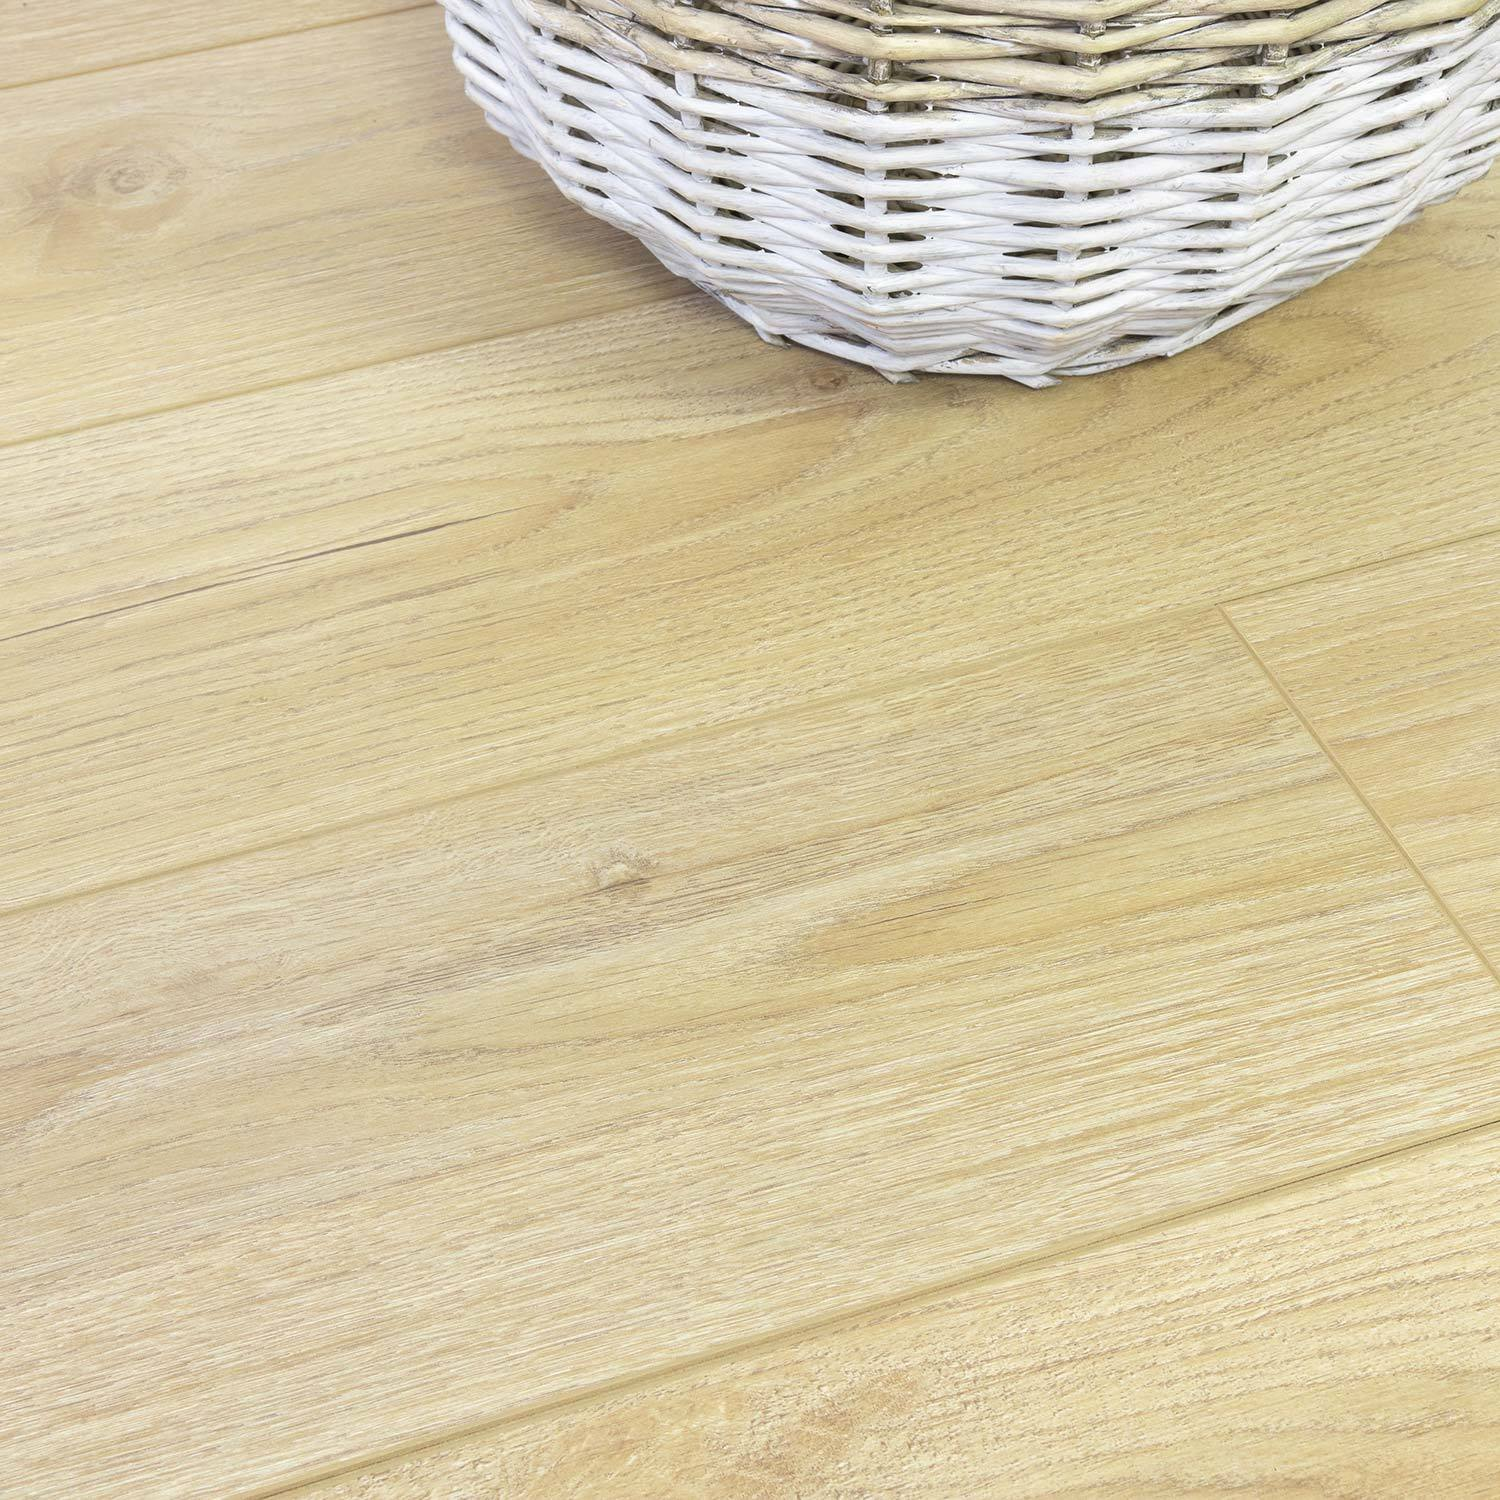 Sisu Laminate Light Brown Oak